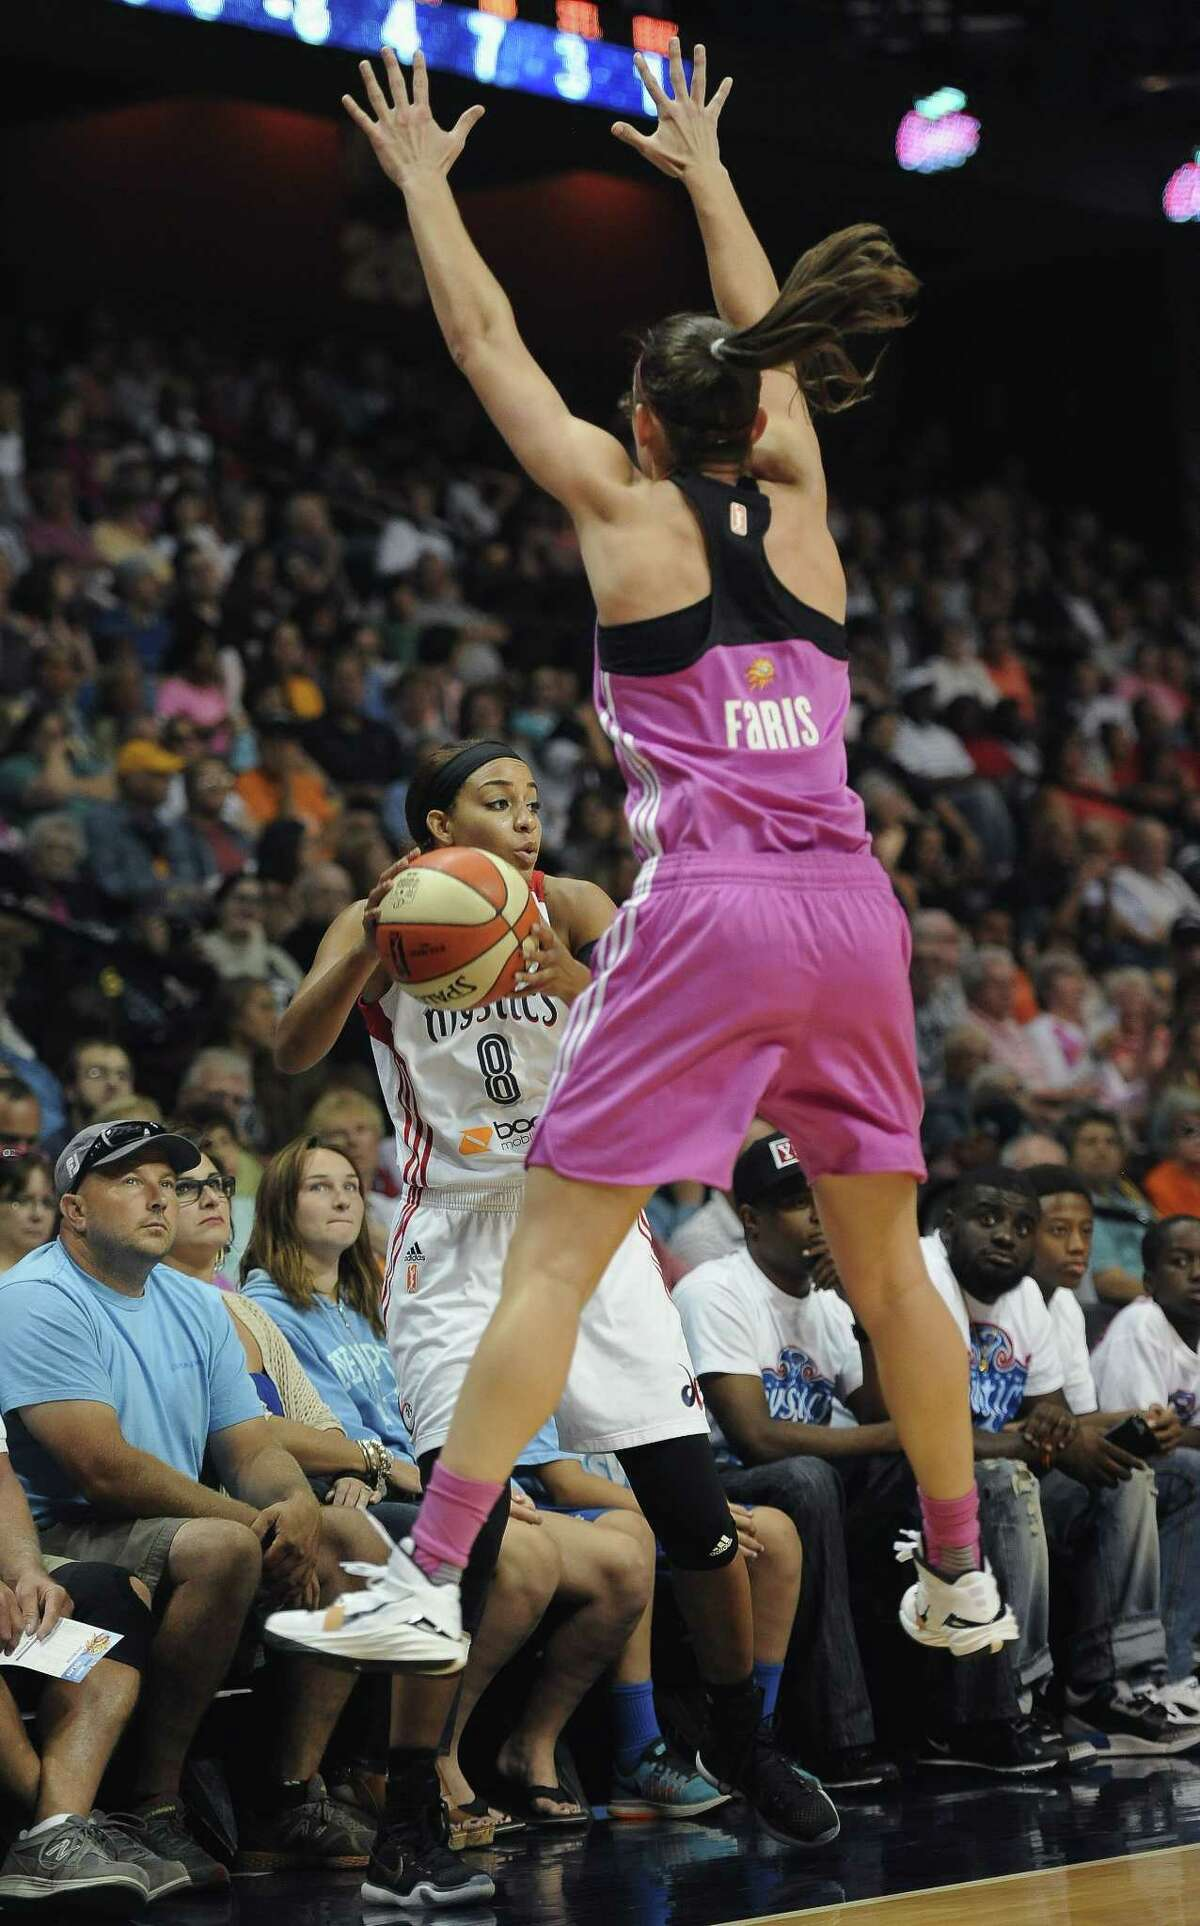 The Connecticut Sun's Kelly Faris pressures the Washington Mystics' Bria Hartley as she attempts to inbound the ball during Friday's game in Uncasville.